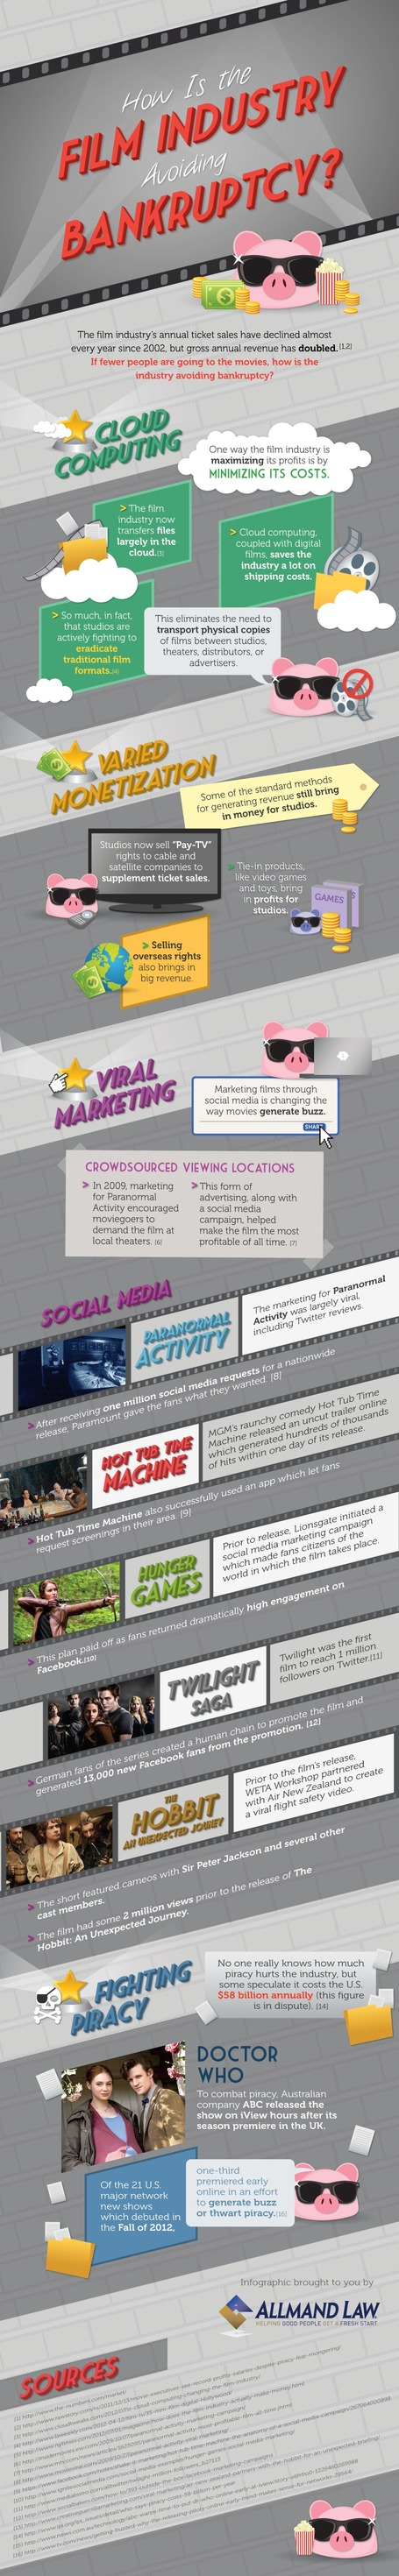 How Social Media and Viral Marketing are Saving the Film Industry [INFOGRAPHIC] | Resources for DNLE for 21st Century | Scoop.it